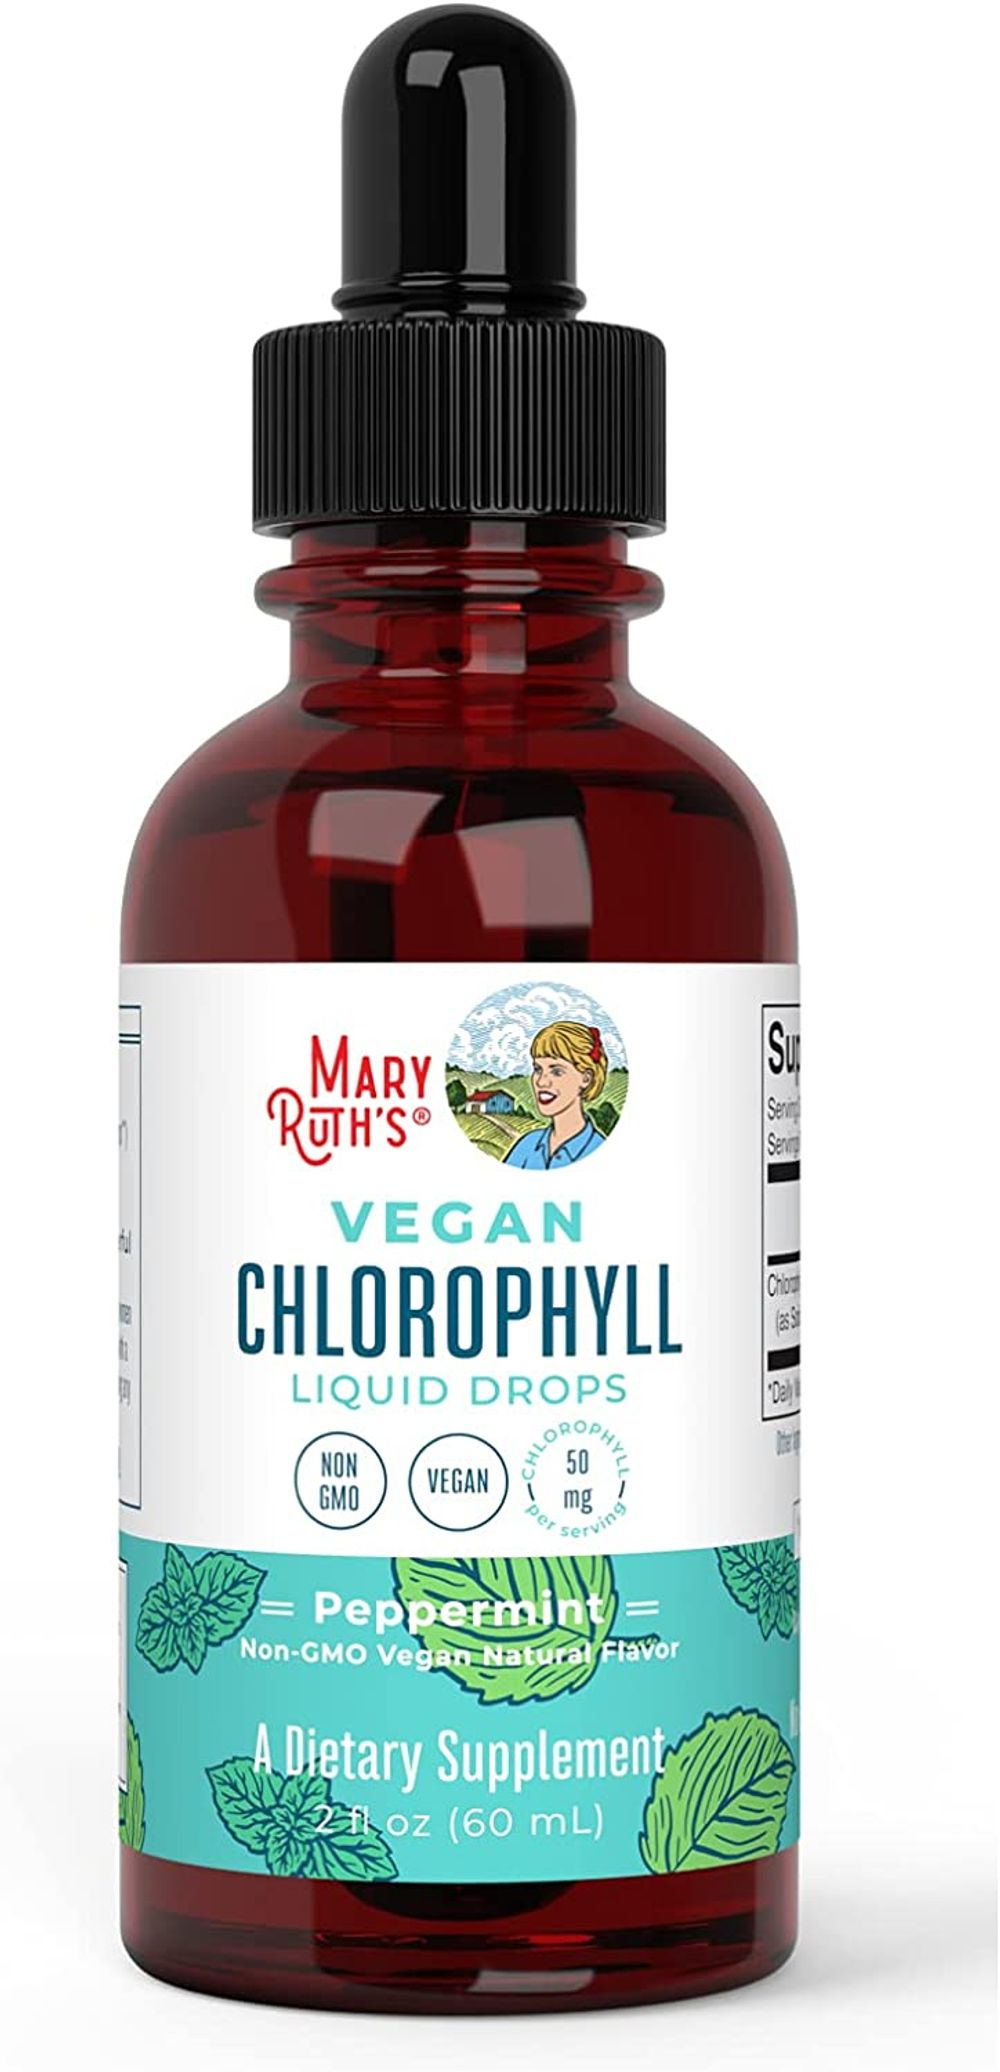 Organic Chlorophyll Liquid Drops by MaryRuth's   Vegan Liquid Chlorophyll   Energy Supplement Natural Deodorant Liver Function Immune Support   Non GMO, Peppermint   50mg per Serving, 30 Servings